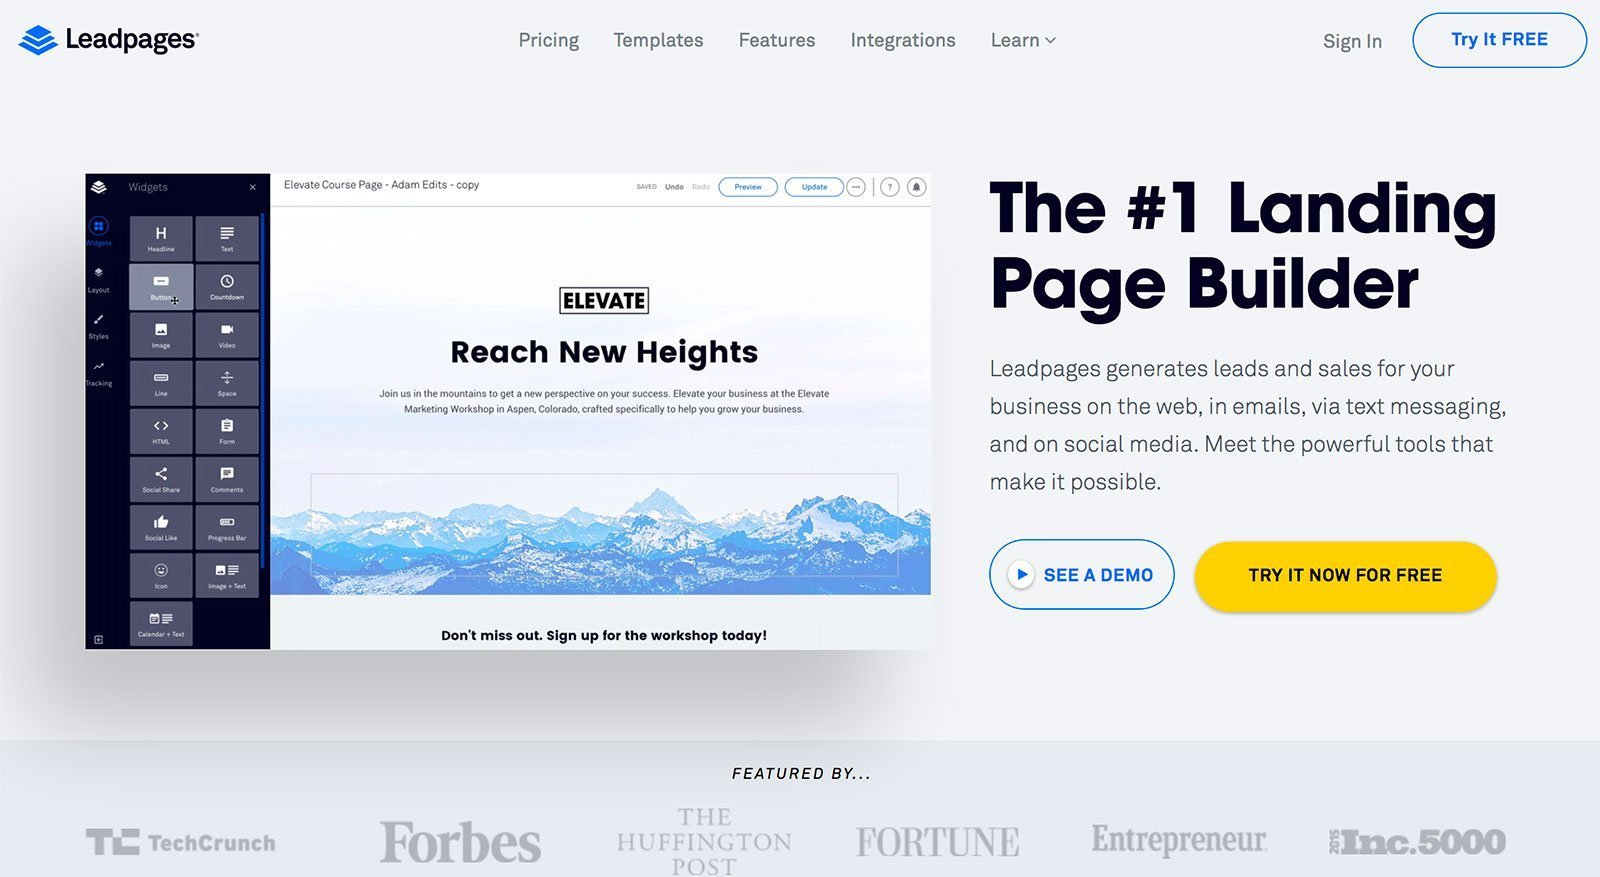 Buy Leadpages Promotional Code 2020